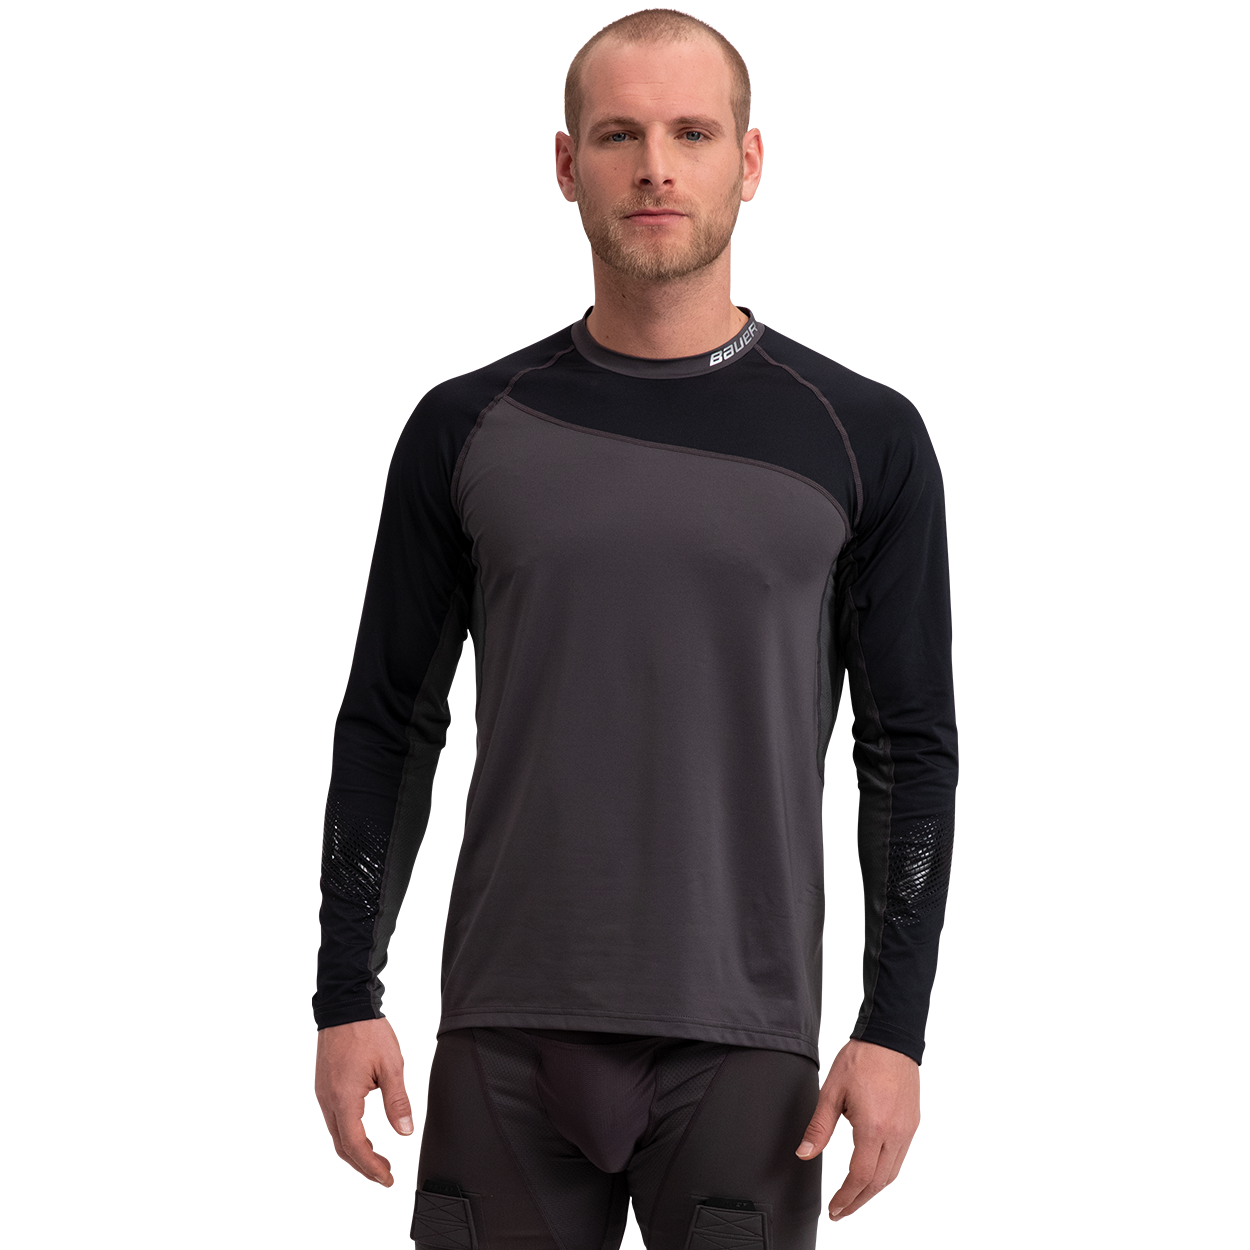 Pro Long Sleeve Base Layer Top Senior,Черный,Размер M